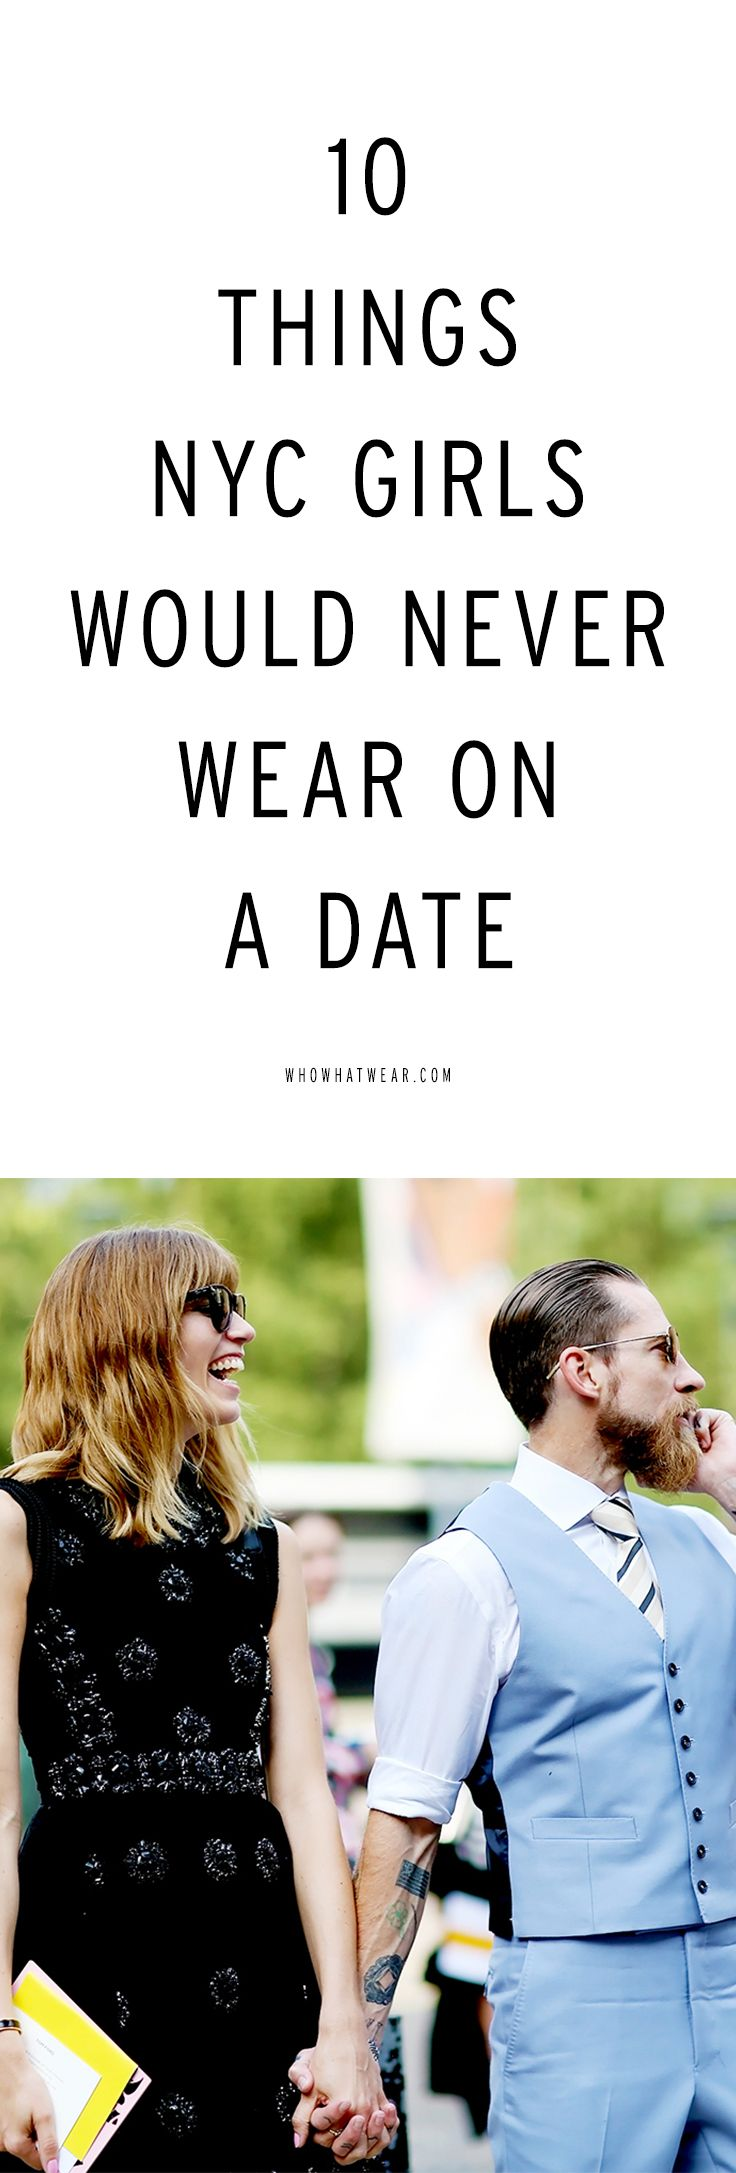 10 things NYC girls would never wear on a date